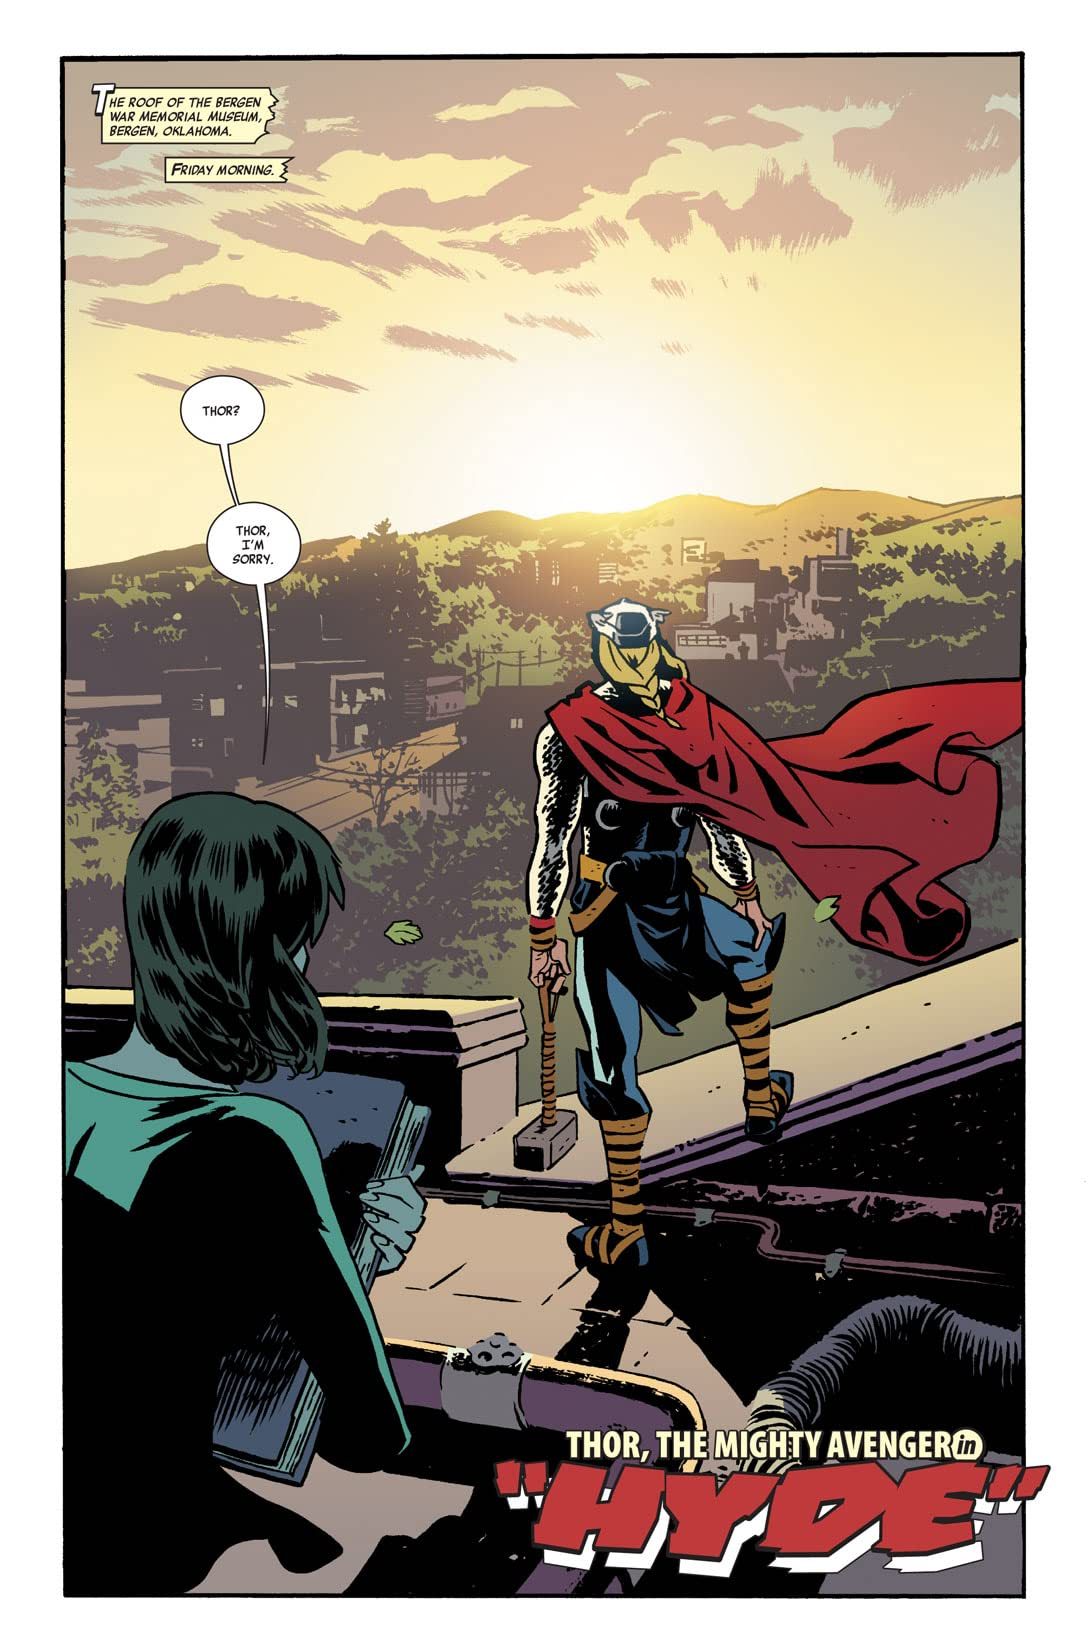 Thor: The Mighty Avenger #2